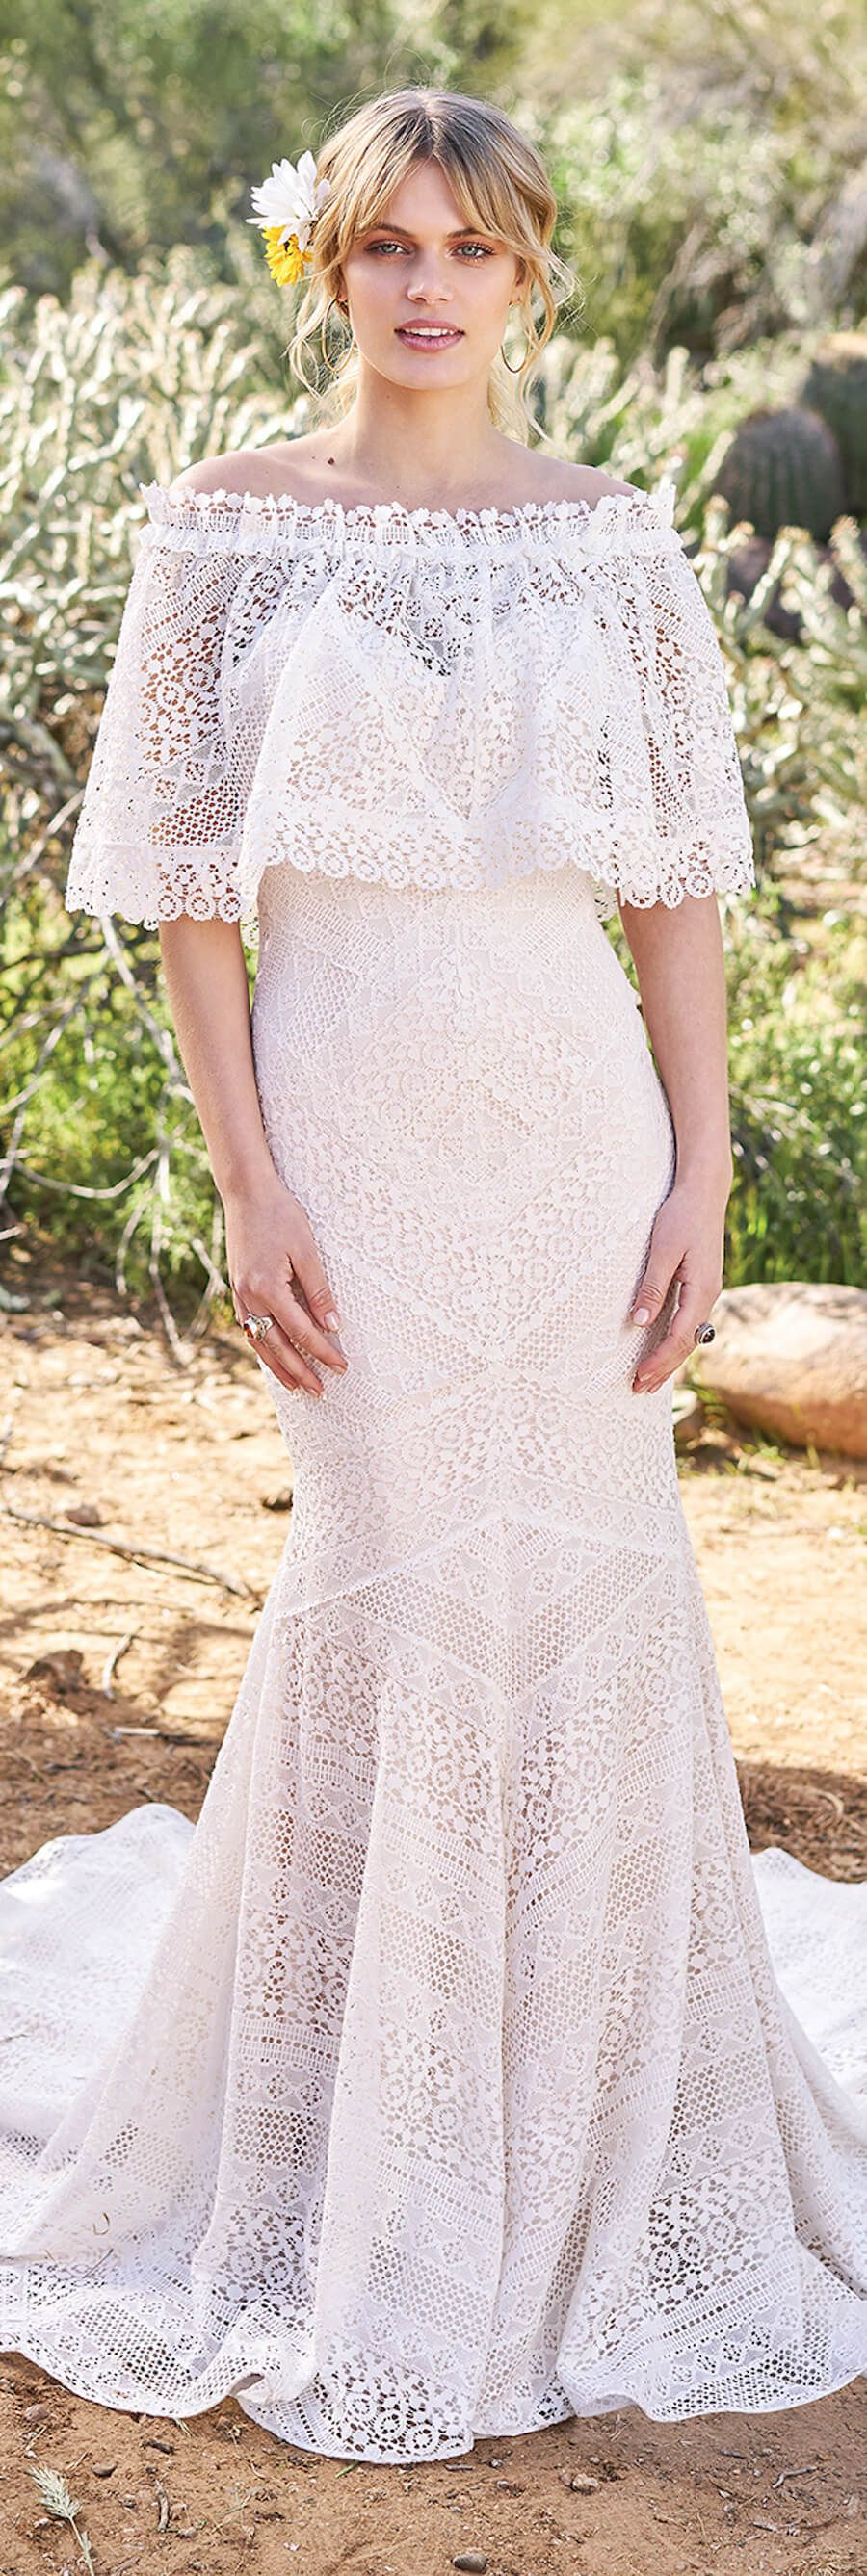 West Wedding Dress Collection Spring 2018